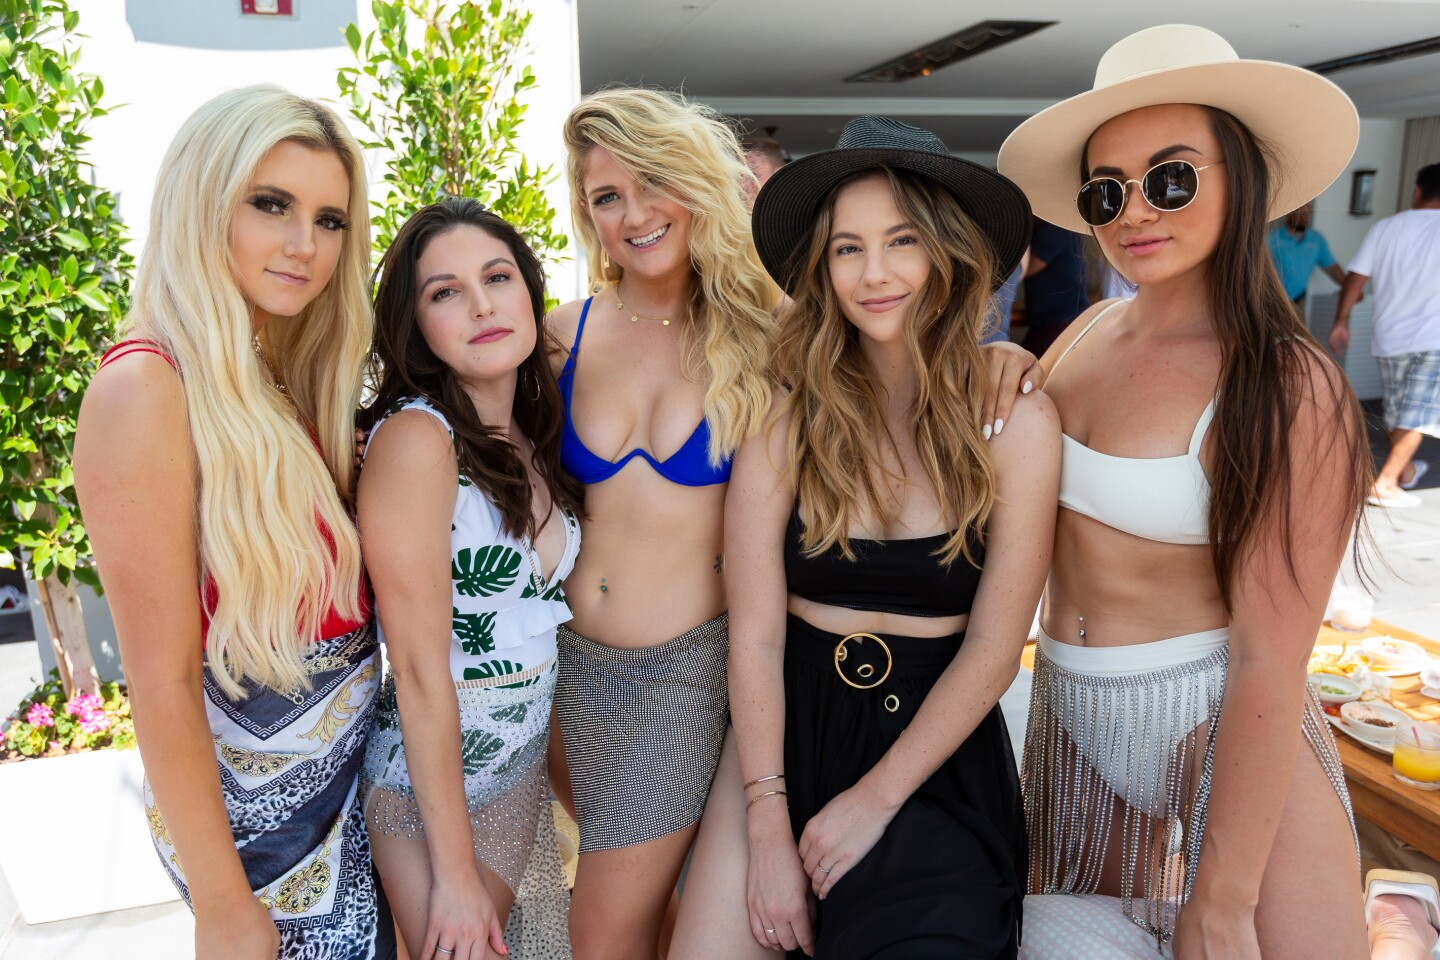 It was standard Sunday Funday shenanigans at The Pool House at the Pendry San Diego on Sunday, June 30, 2019.